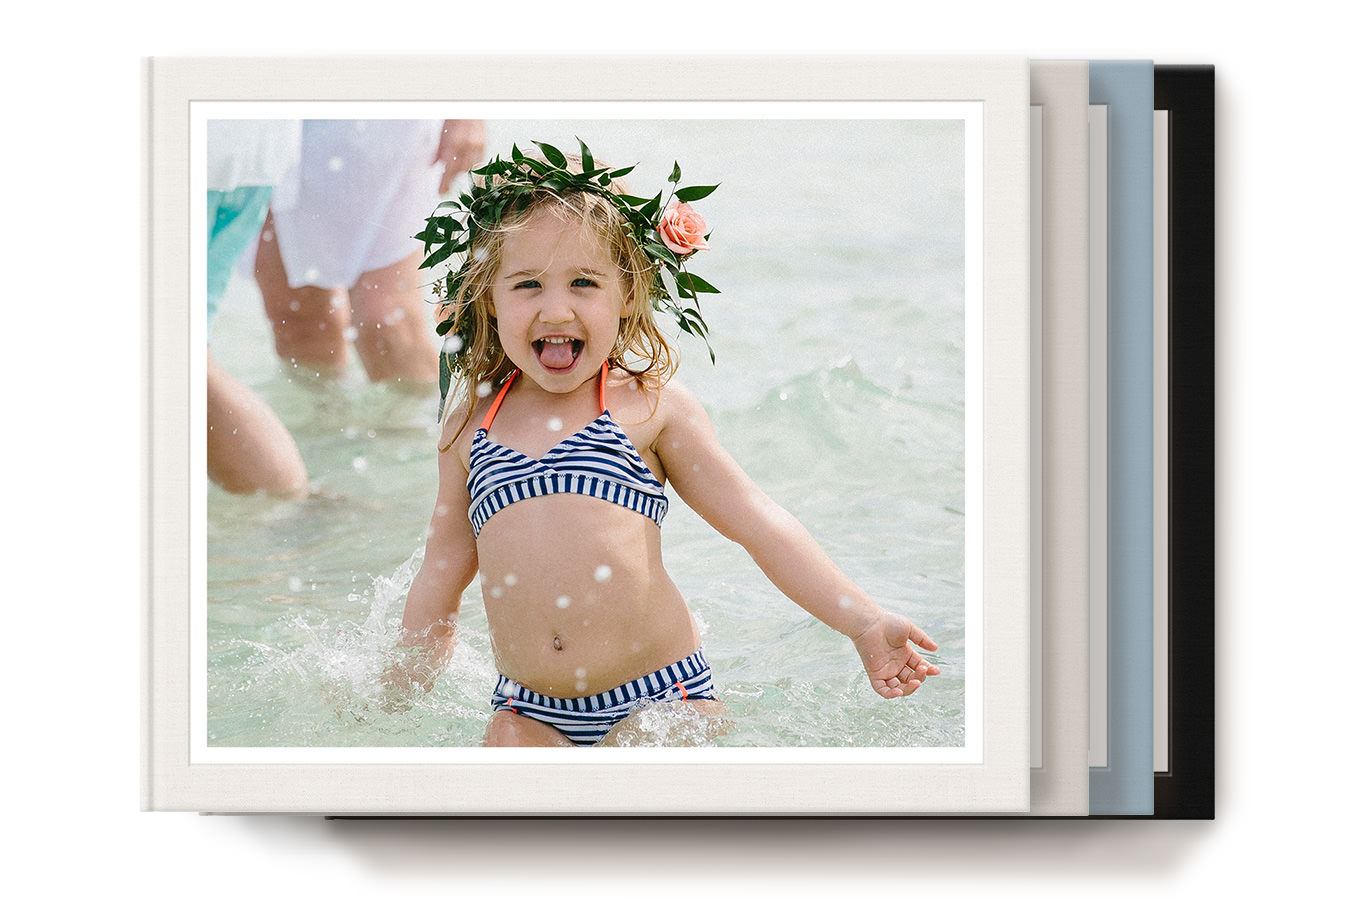 Stack of four classic photo books with cover image of a child in the ocean.